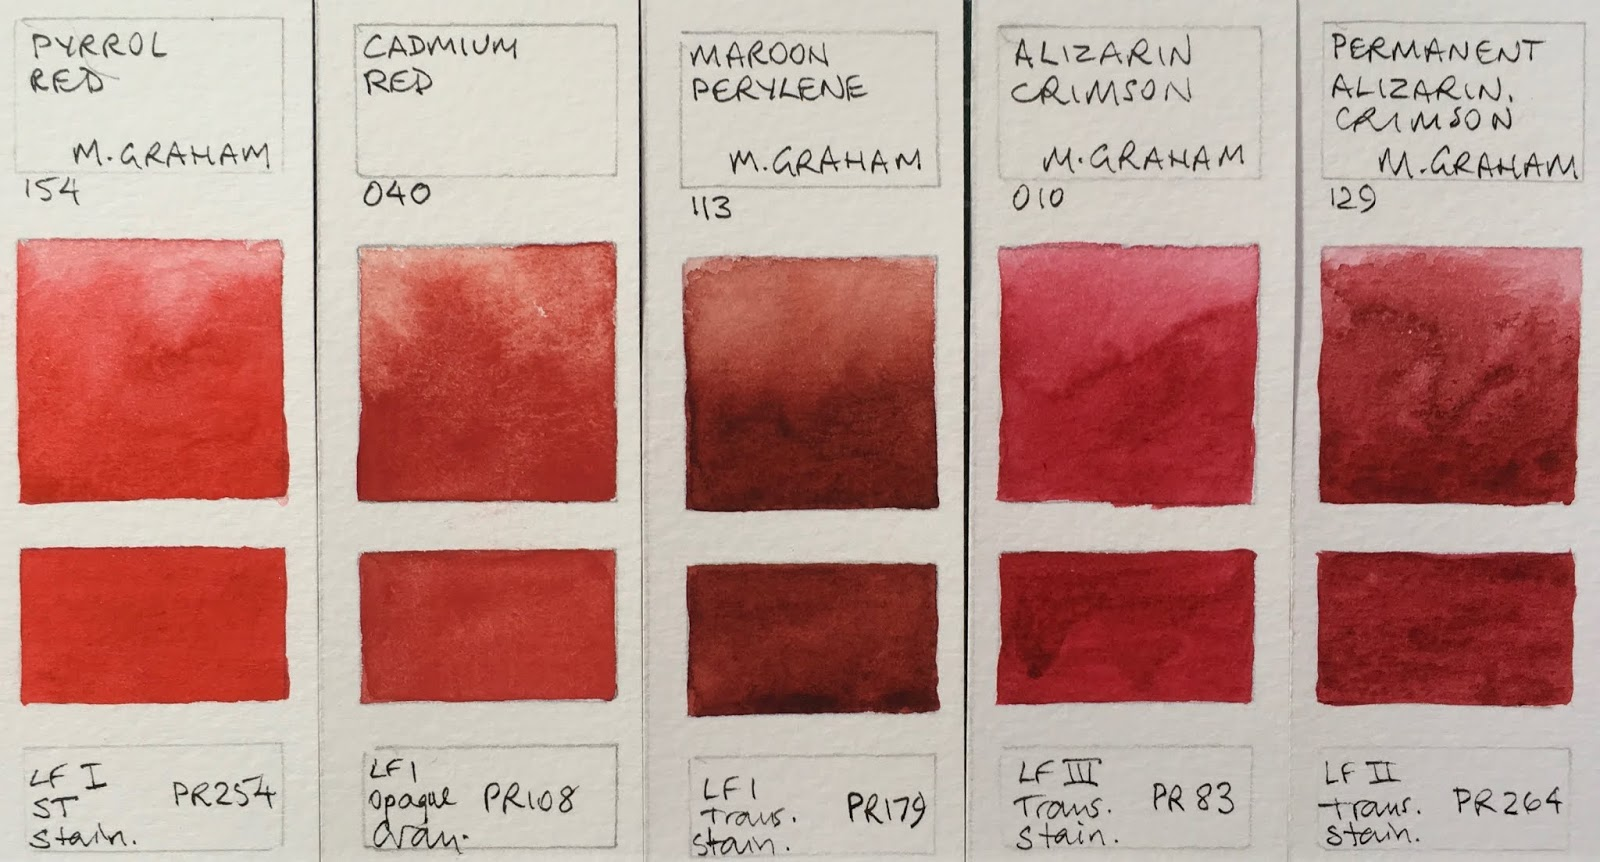 M Graham Watercolours Pyrrol Red Cadmium Maroon Perylene Alizarin Crimson Permanent